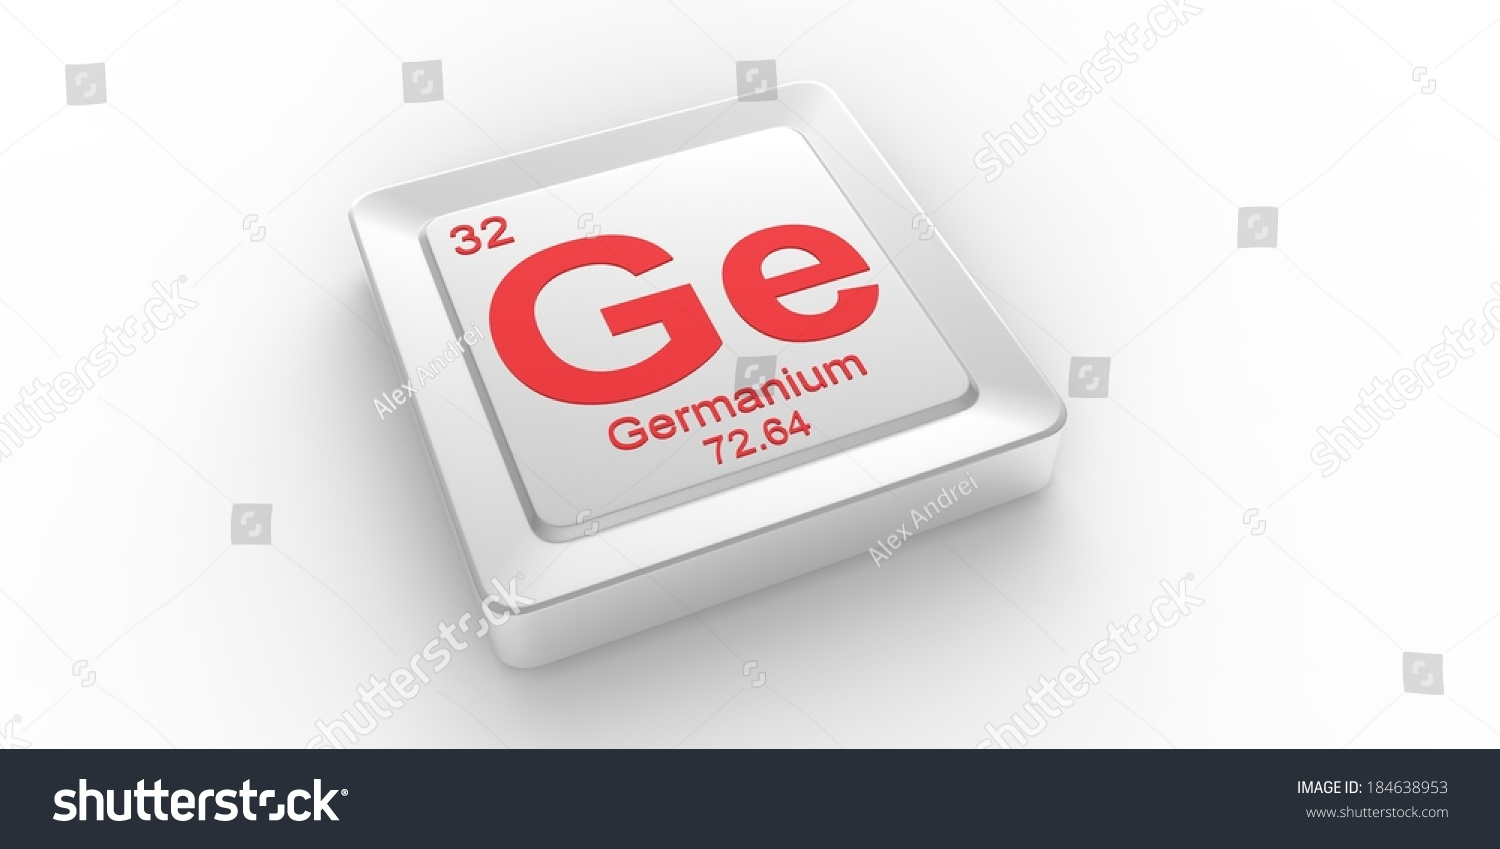 Ge symbol 32 material germanium chemical stock illustration ge symbol 32 material for germanium chemical element of the periodic table gamestrikefo Gallery